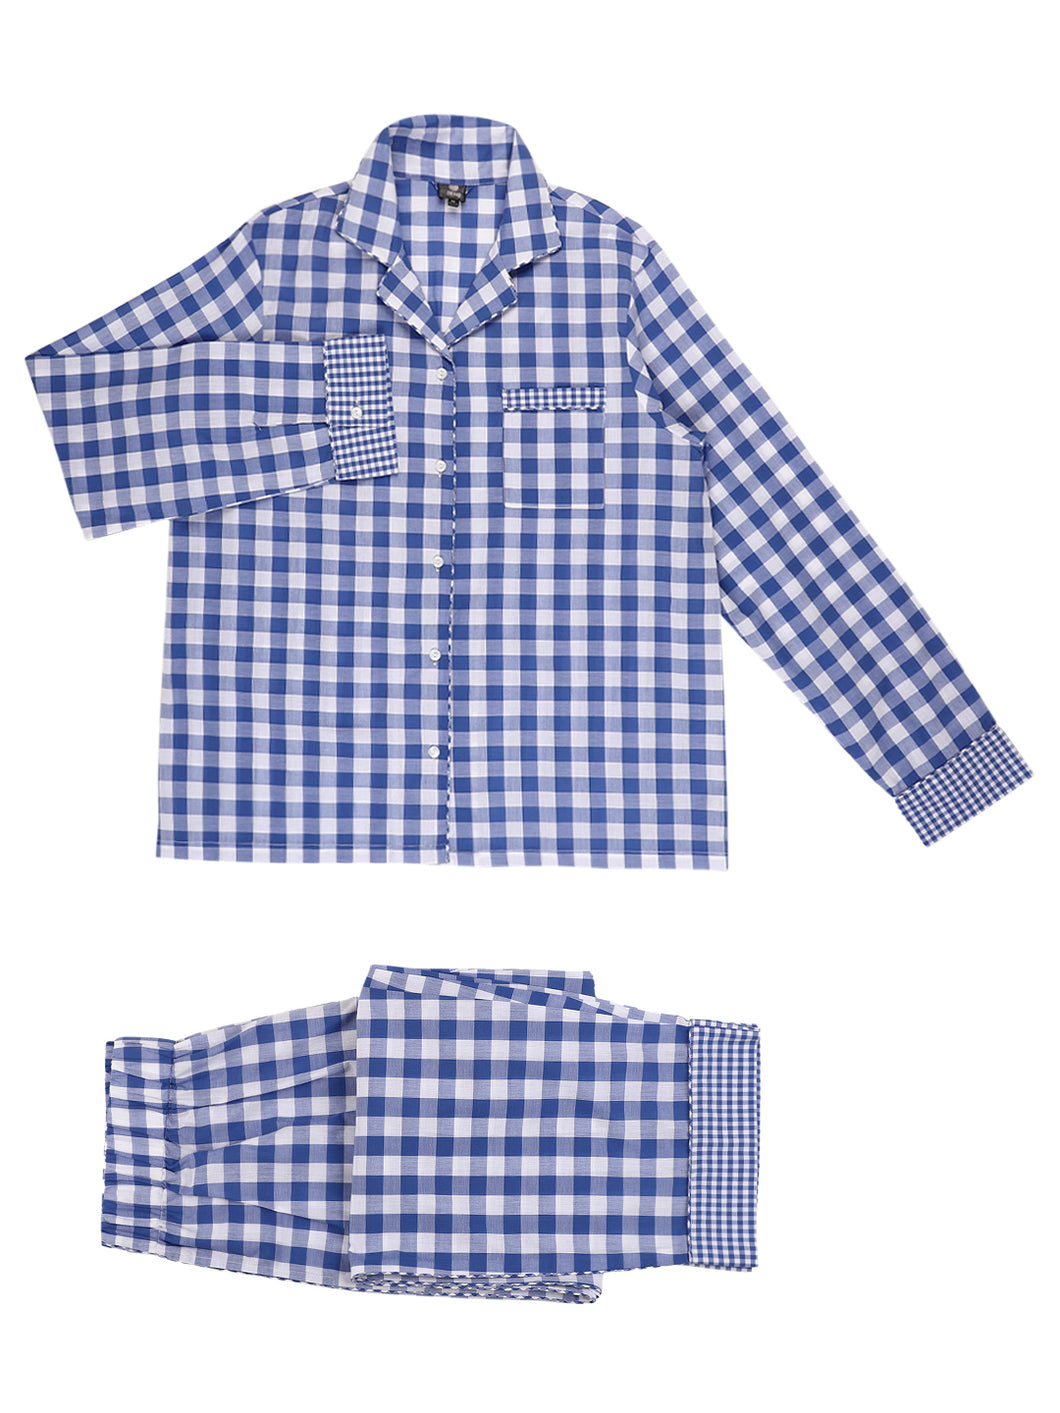 Gingham PJ set